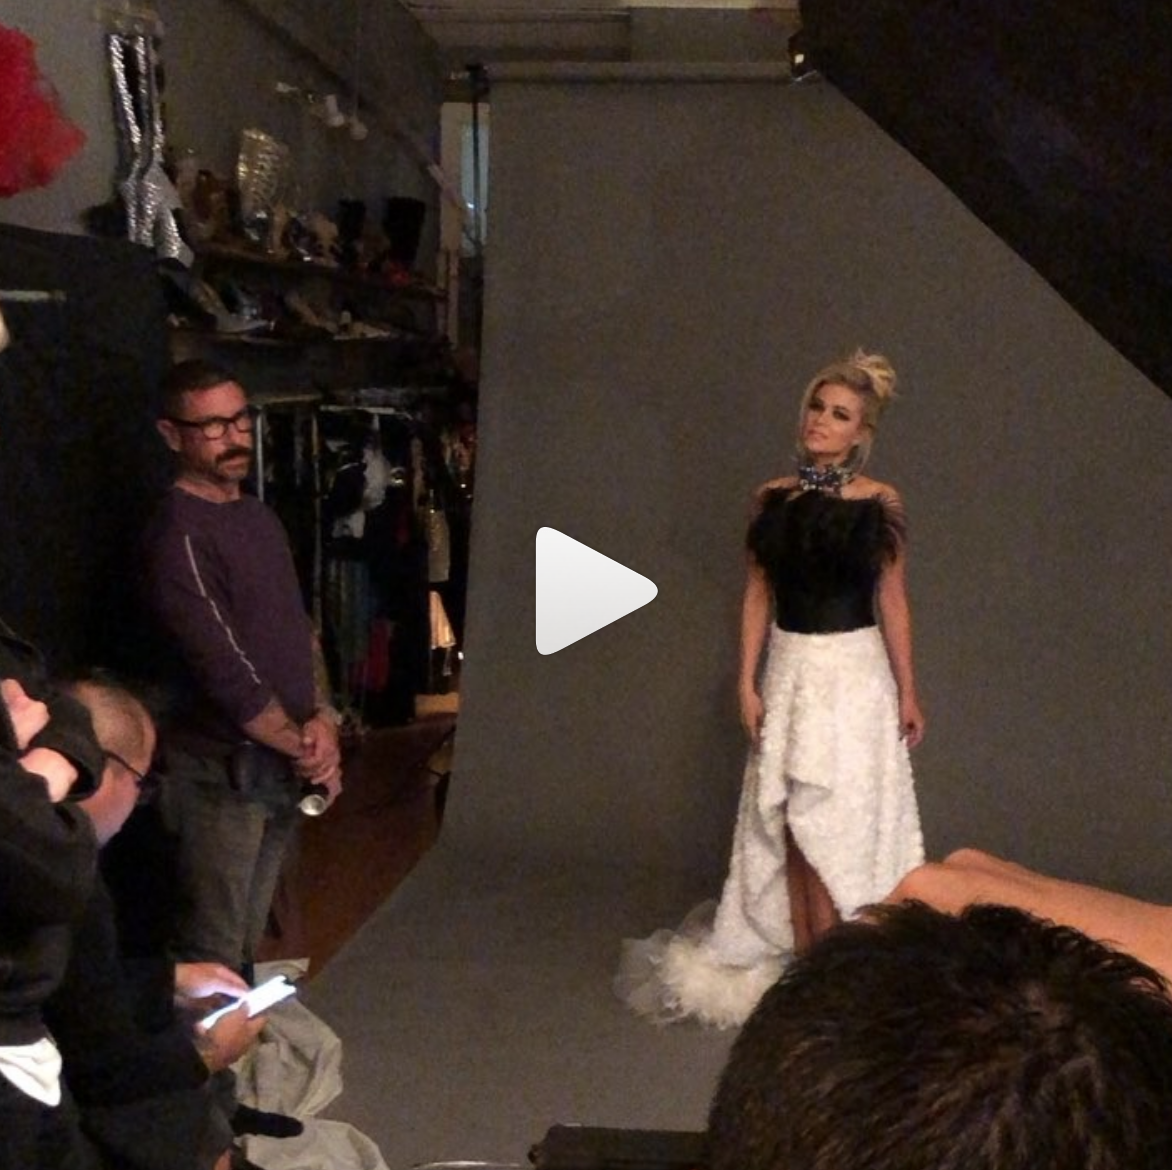 #bts  with the gorgeous  @carmenelectra  shooting a campaign for her body cream  @vilacto wearing our designers :  @novoselsavic  @deviantlavie   @kilame   @baroqcojewelry Styled by  @ivanbitton  Produced by  @aarongomezp  All fashion provided by  #ivanbittonstylehouse